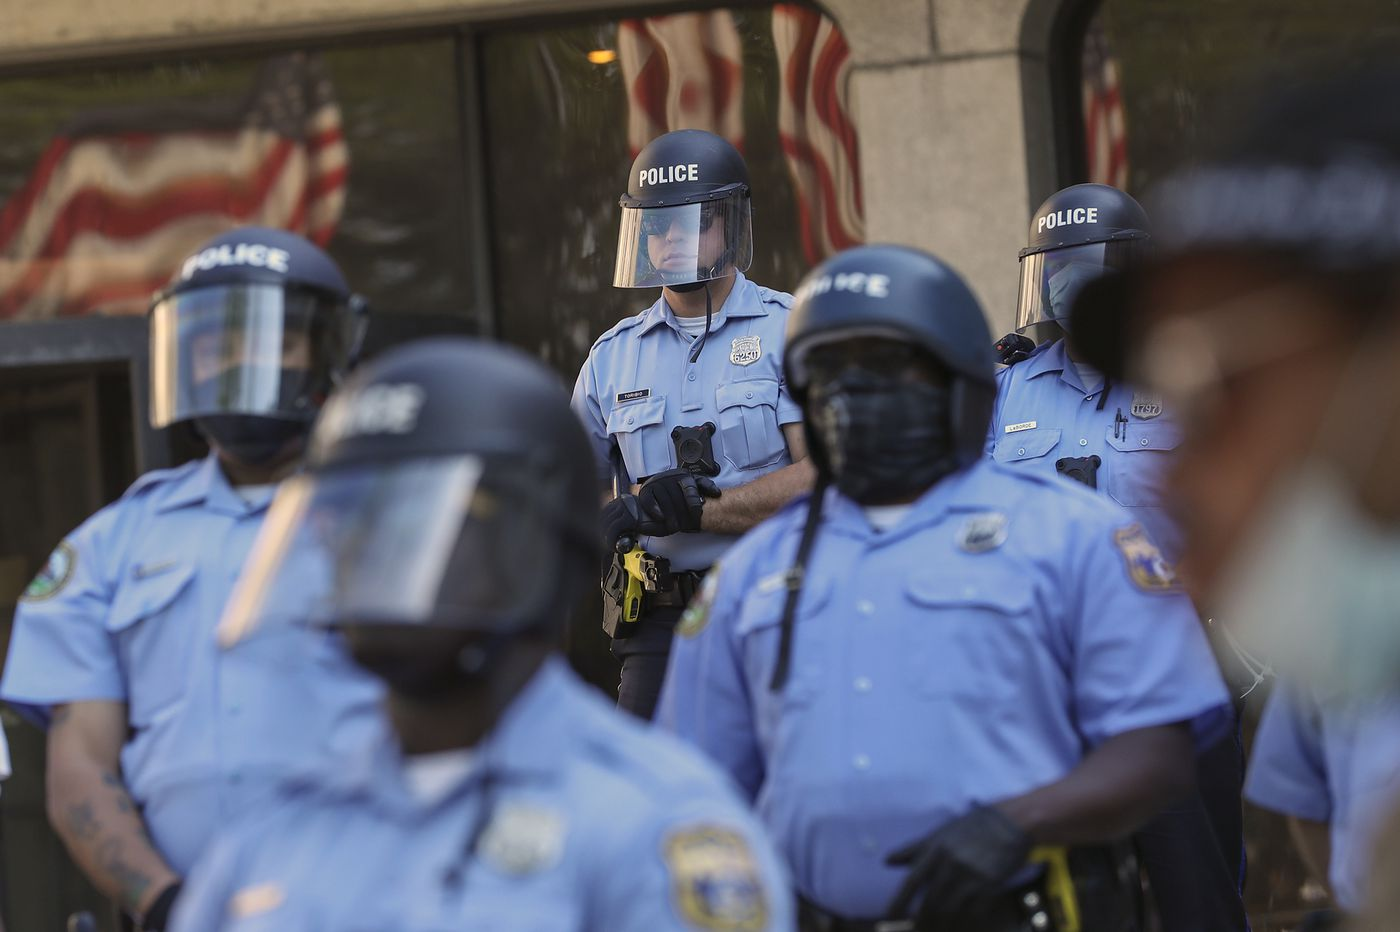 Philly City Council approves police reform measures, including banning choke holds